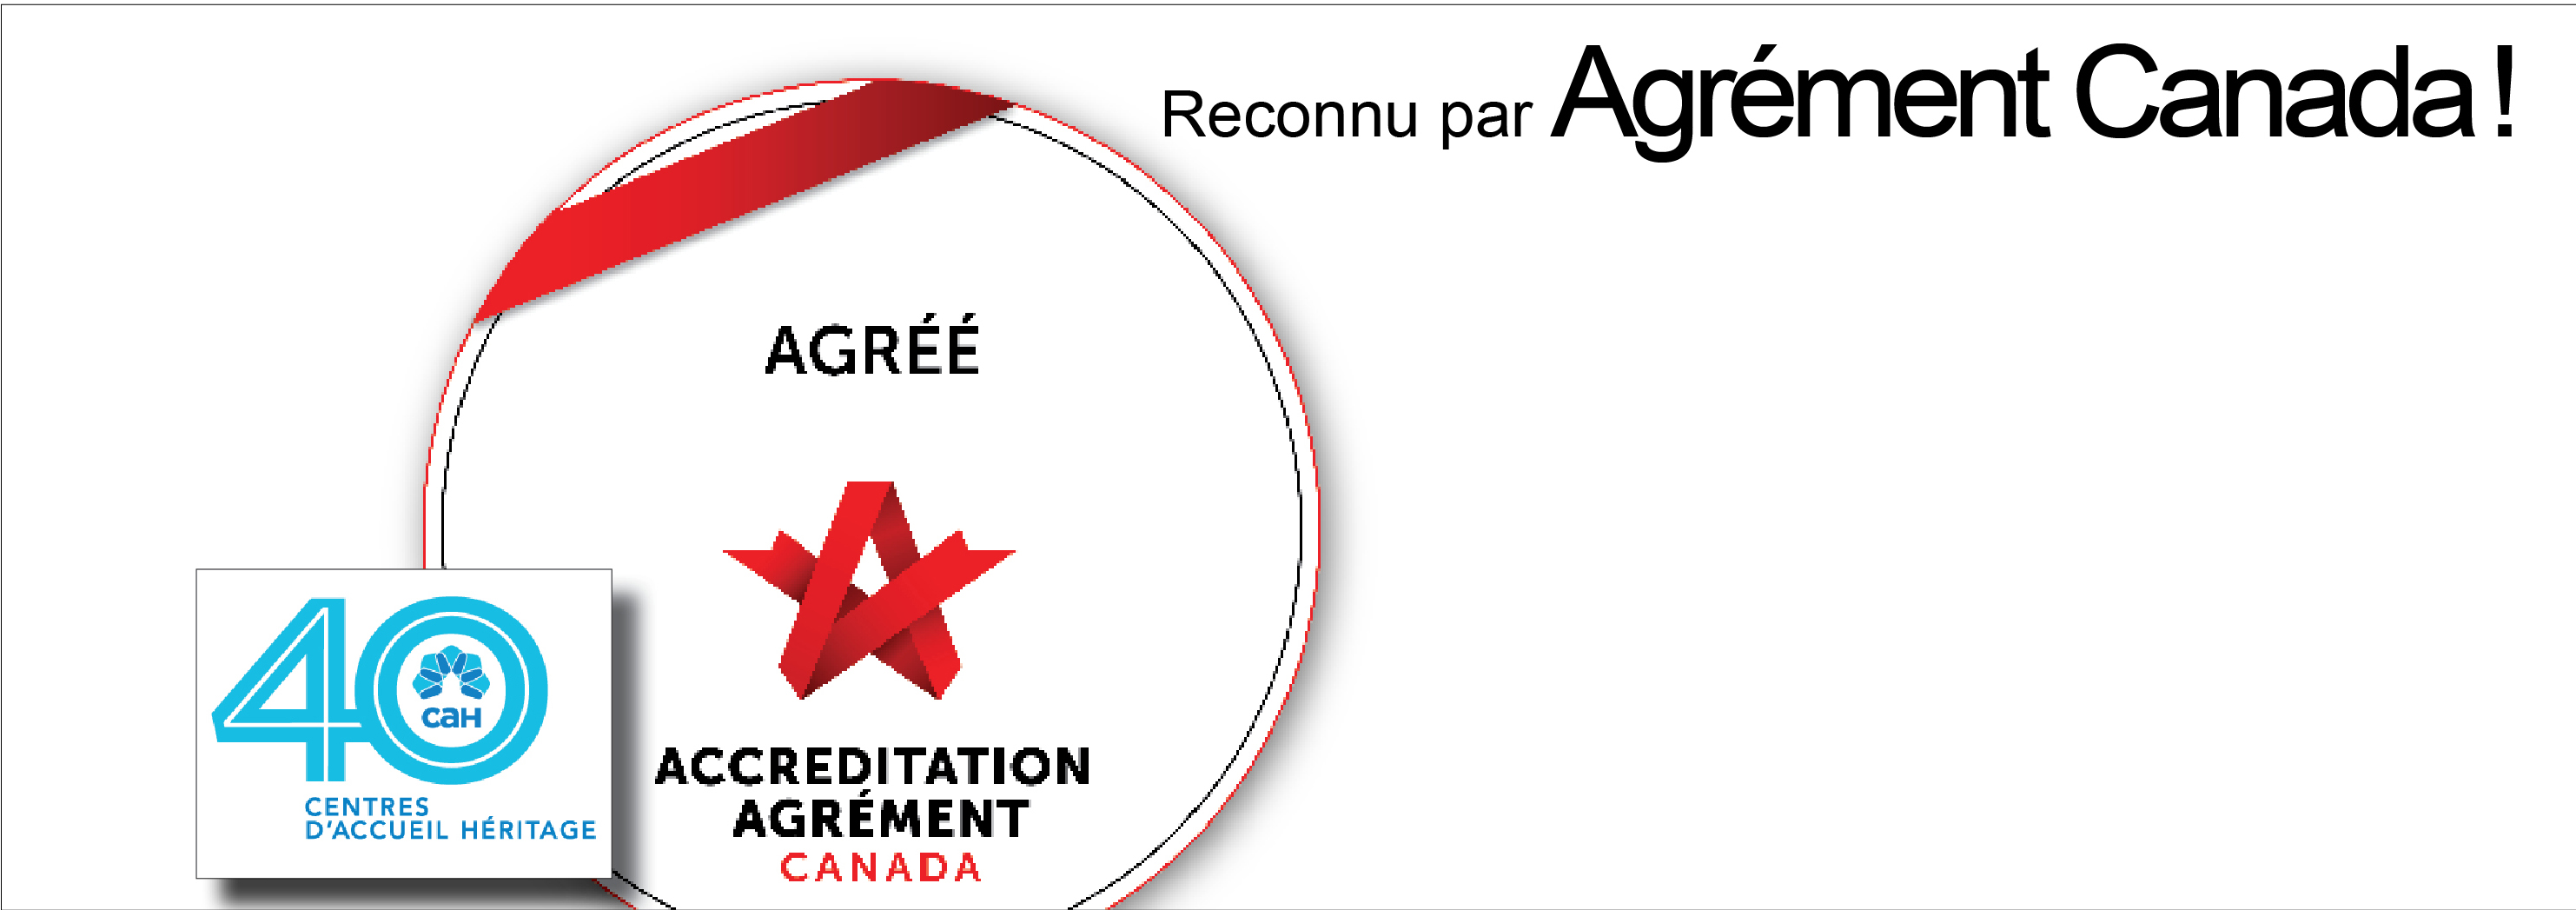 cah-agree-par-agrement-canada